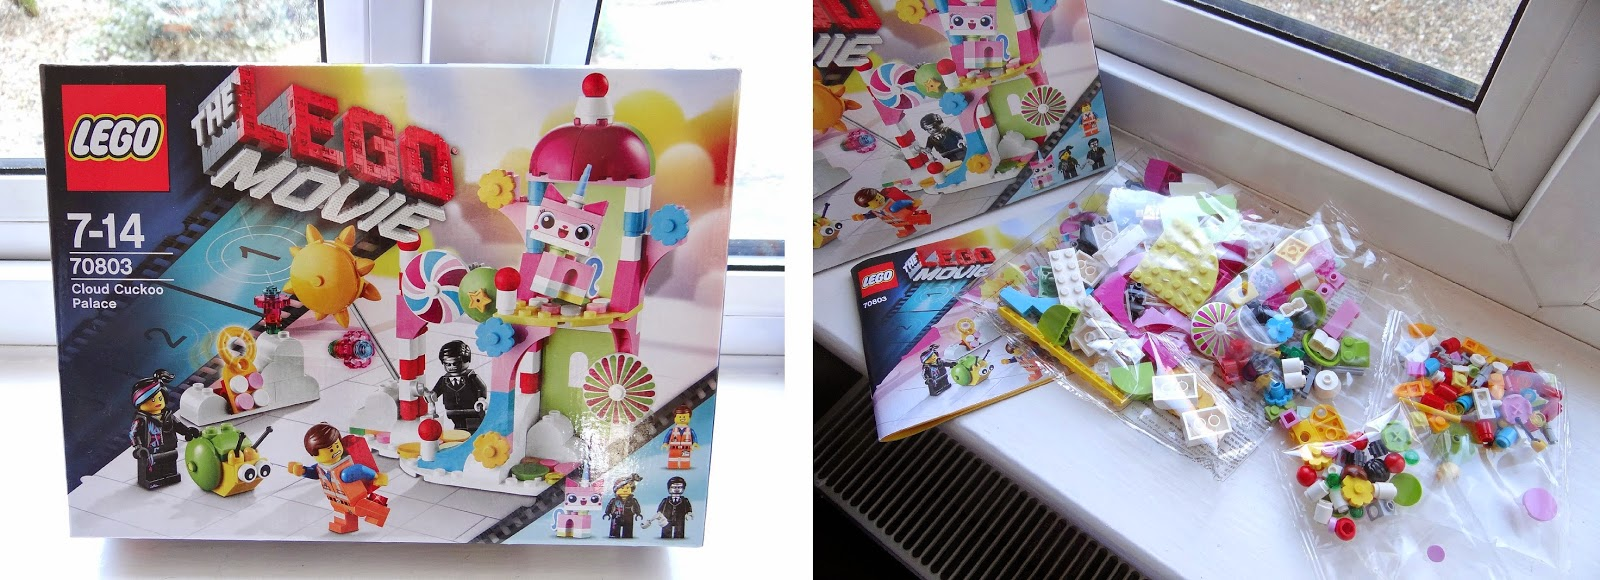 LEGO Spring 2014, LEGO The Movie Cuckoo Palace, LEGO Unikitty